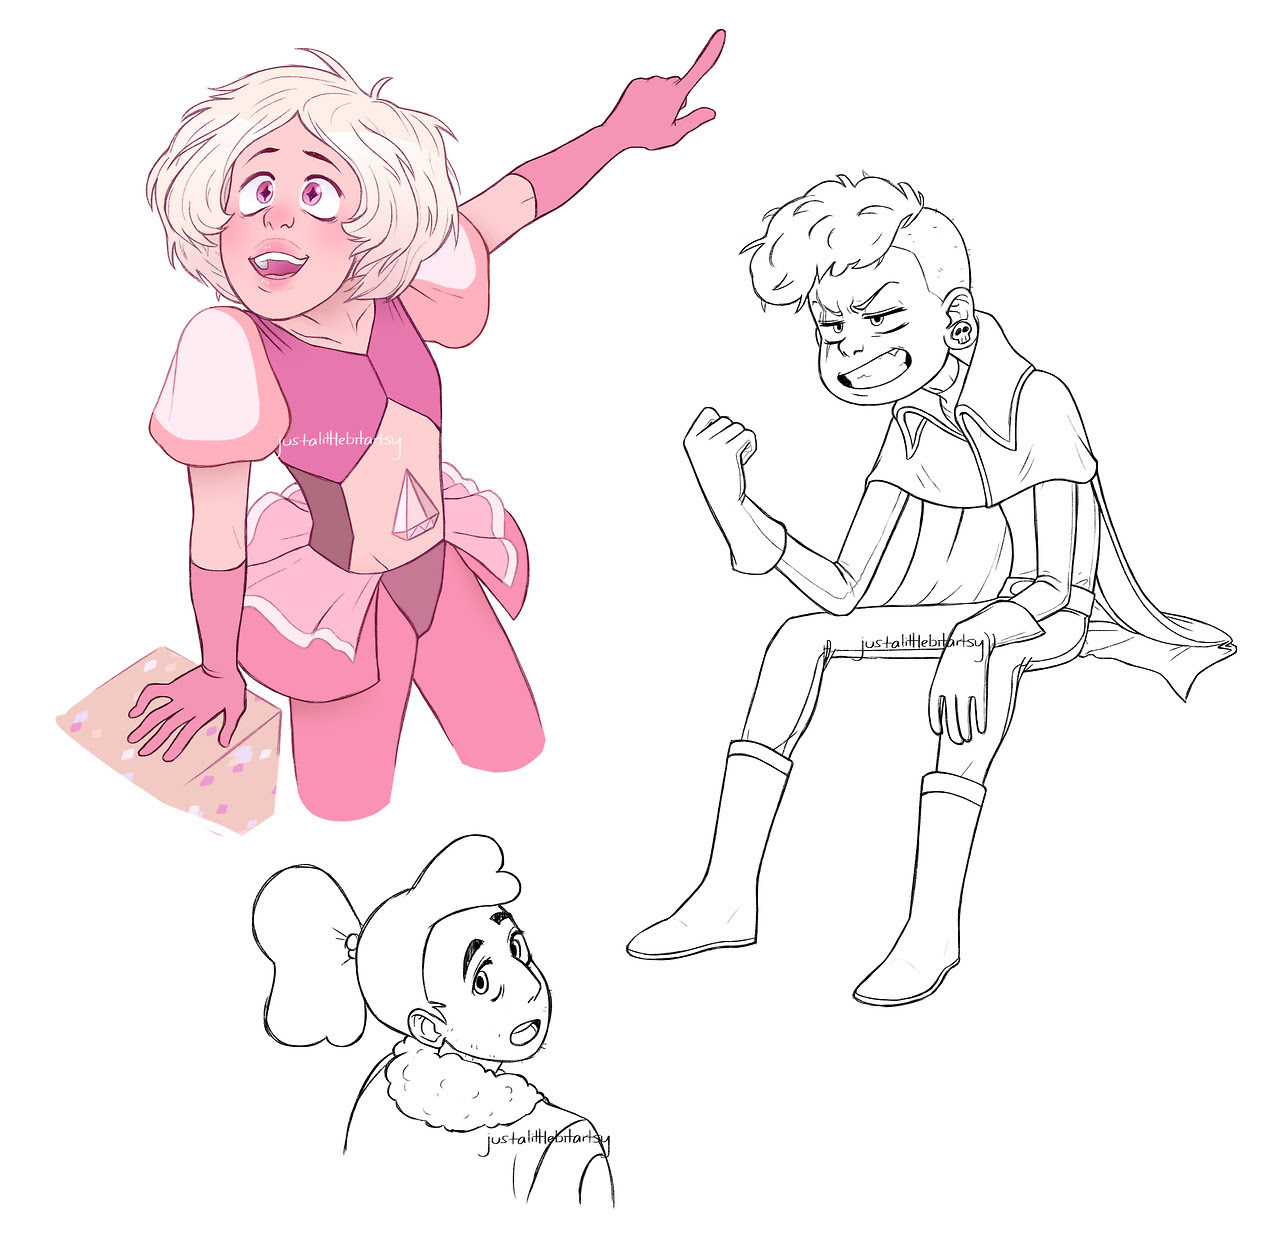 steven universe got me FUCKED UP. i will die for pink, captain, and prickly stevonnie. (art by me, do not repost without credit.)